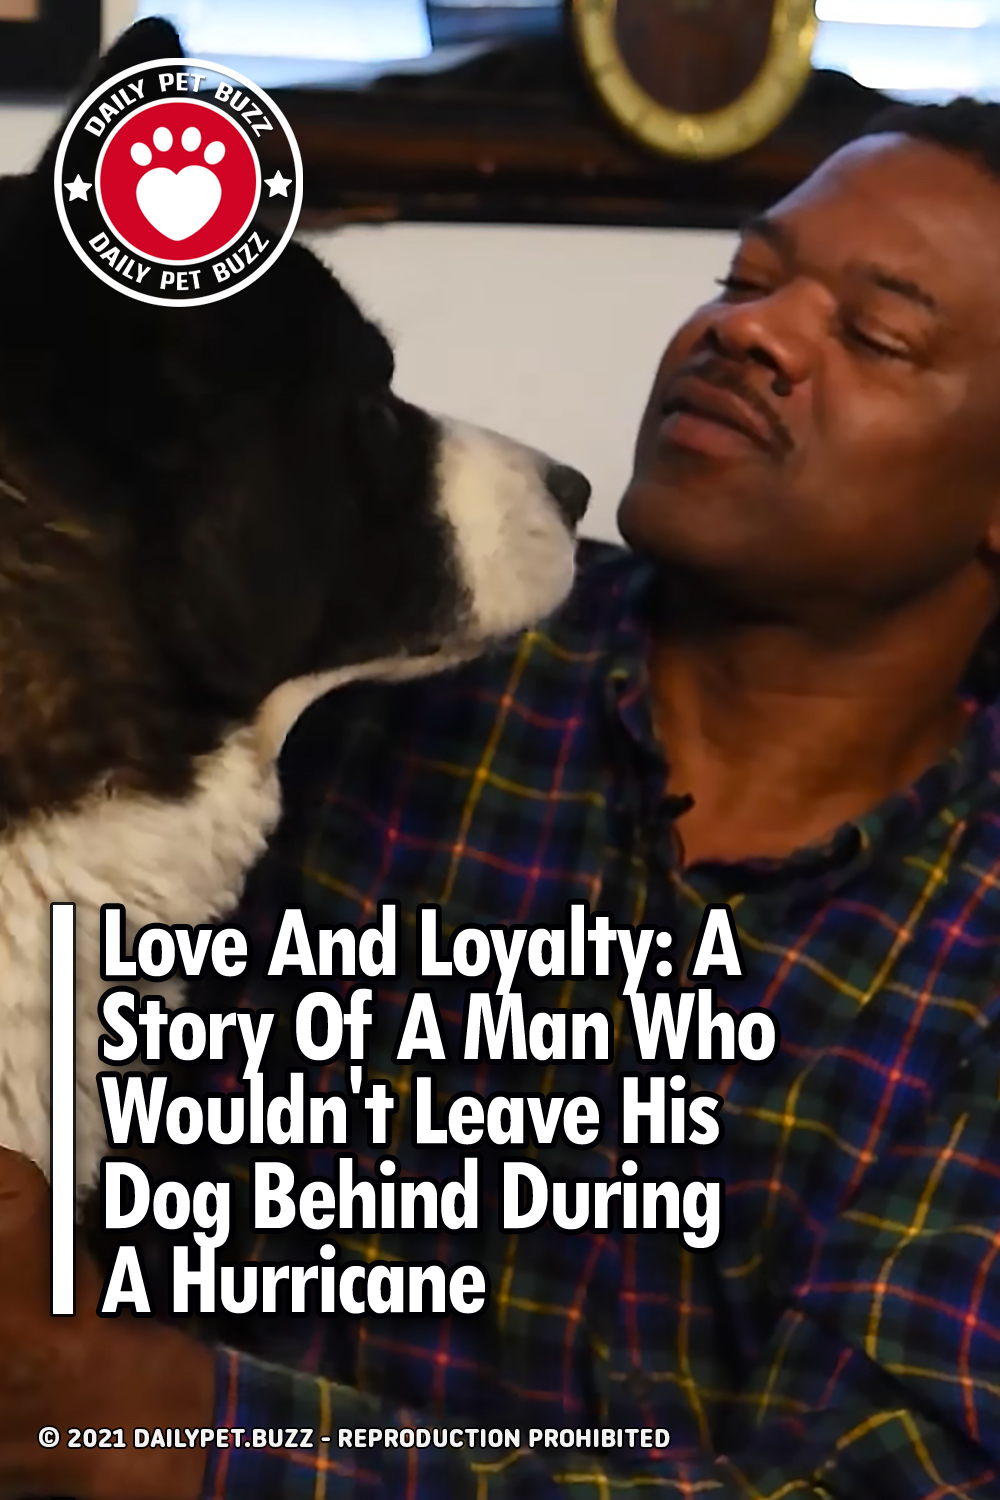 Love And Loyalty: A Story Of A Man Who Wouldn\'t Leave His Dog Behind During A Hurricane